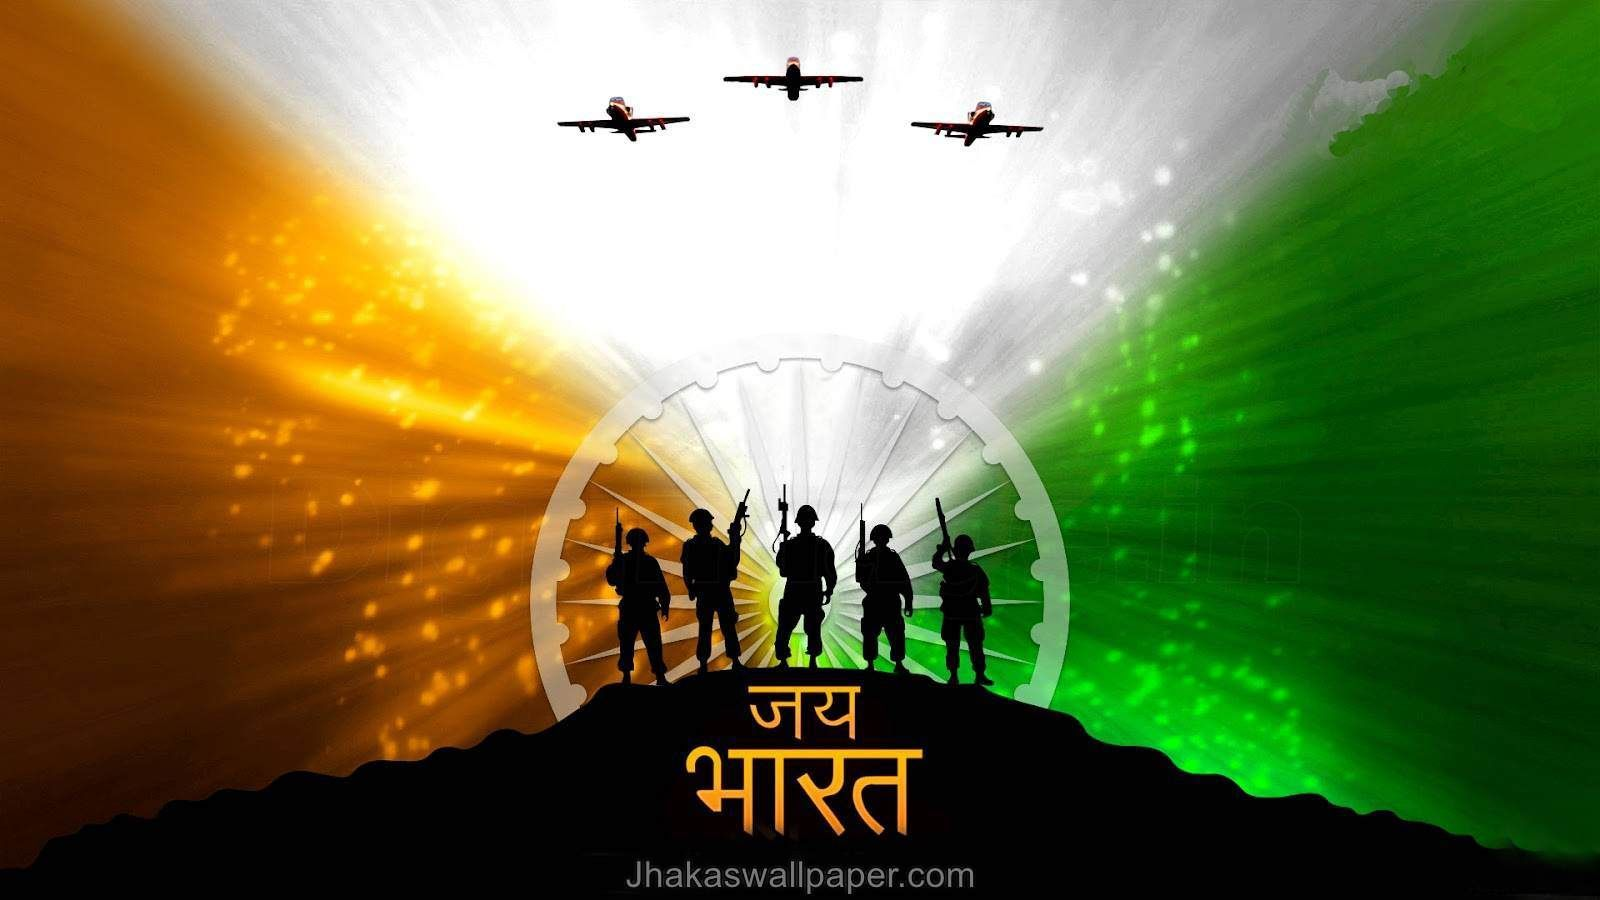 indian army wallpapers top free indian army backgrounds wallpaperaccess indian army wallpapers top free